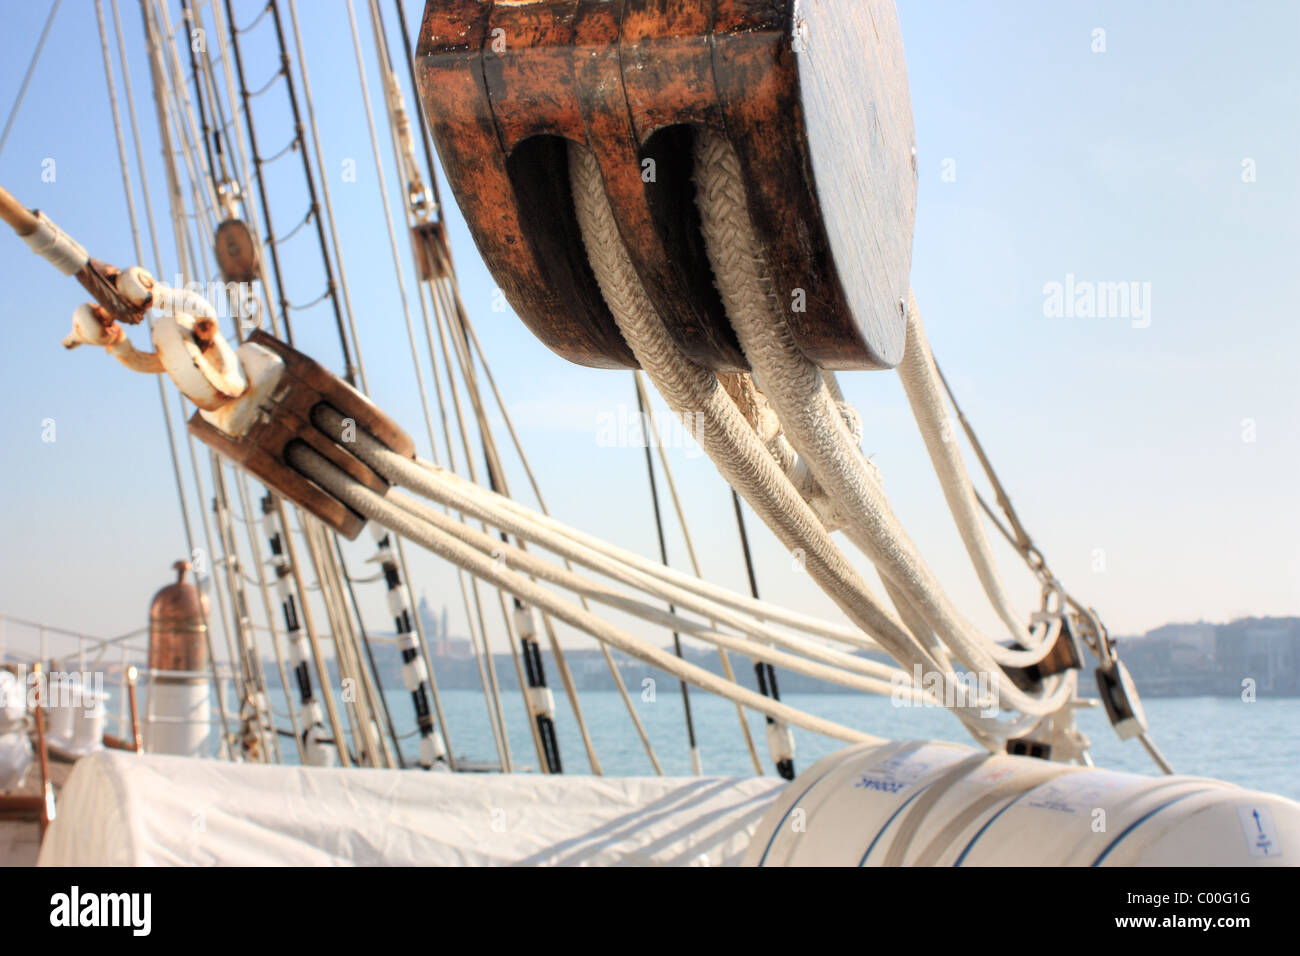 Detail of a sailing ship - Stock Image